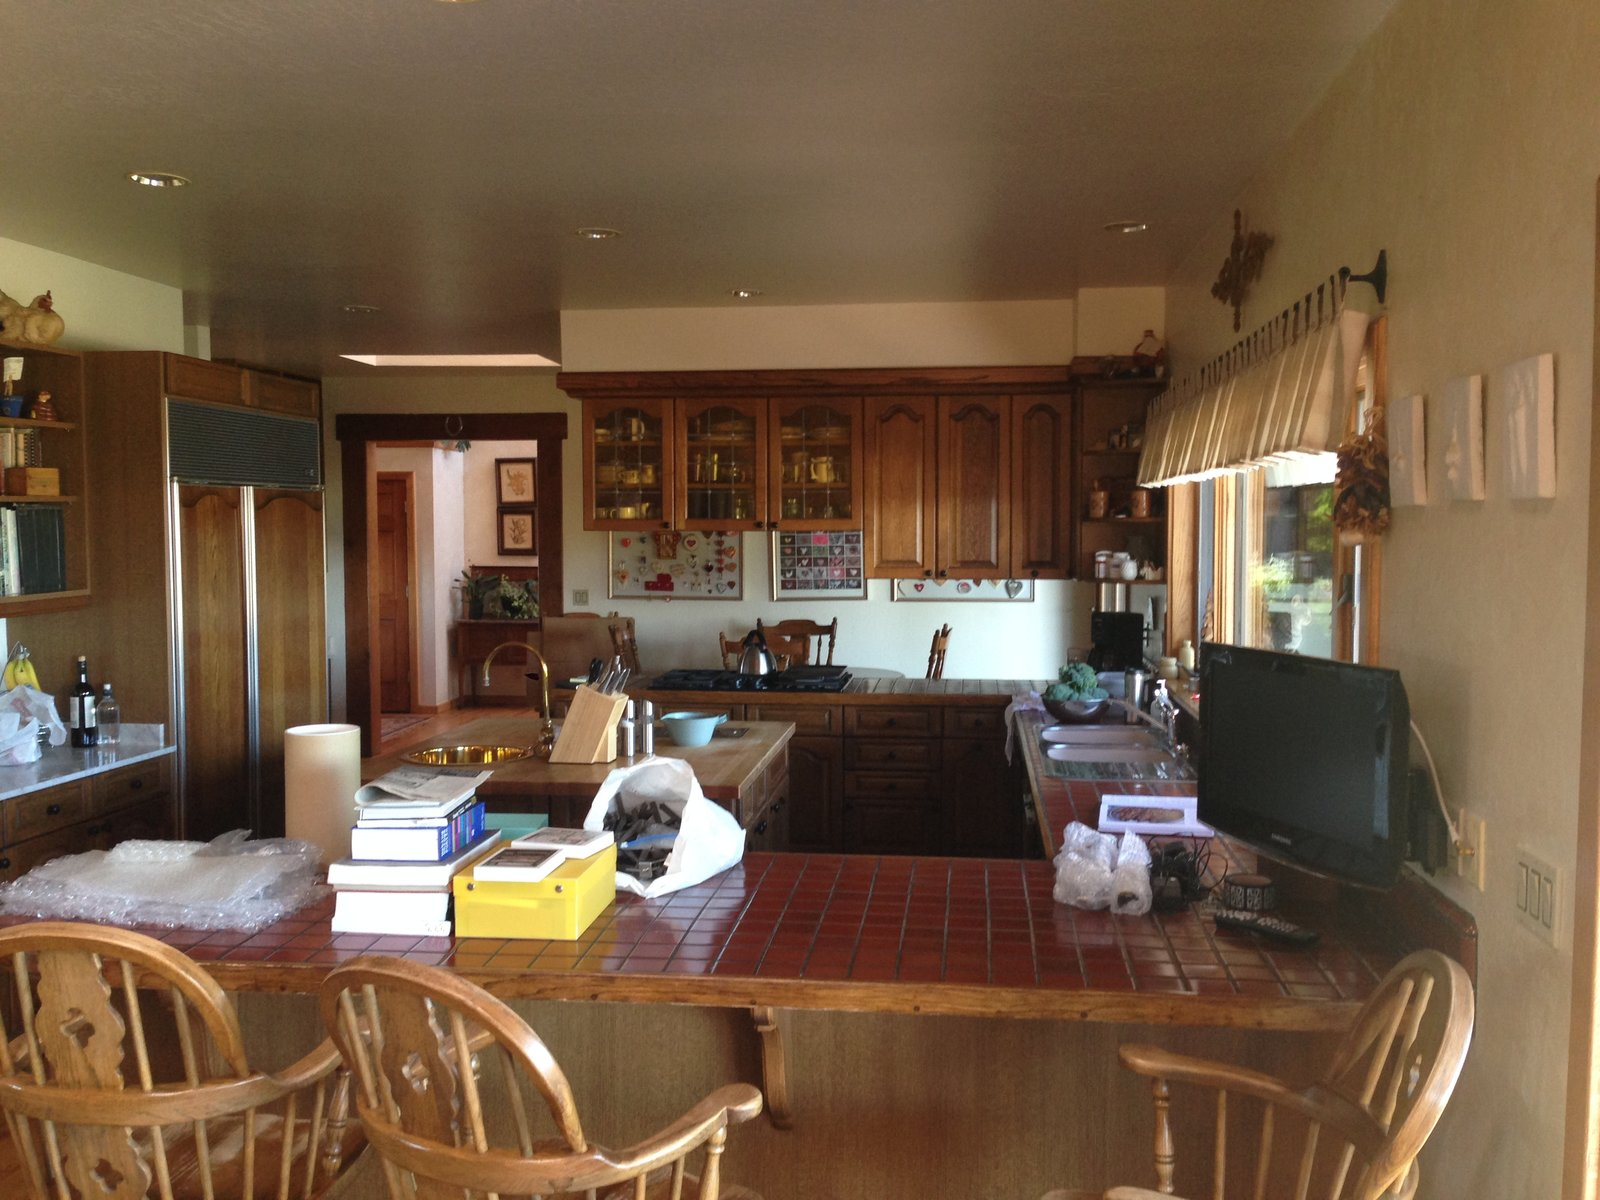 Before: House for Grandparents kitchen